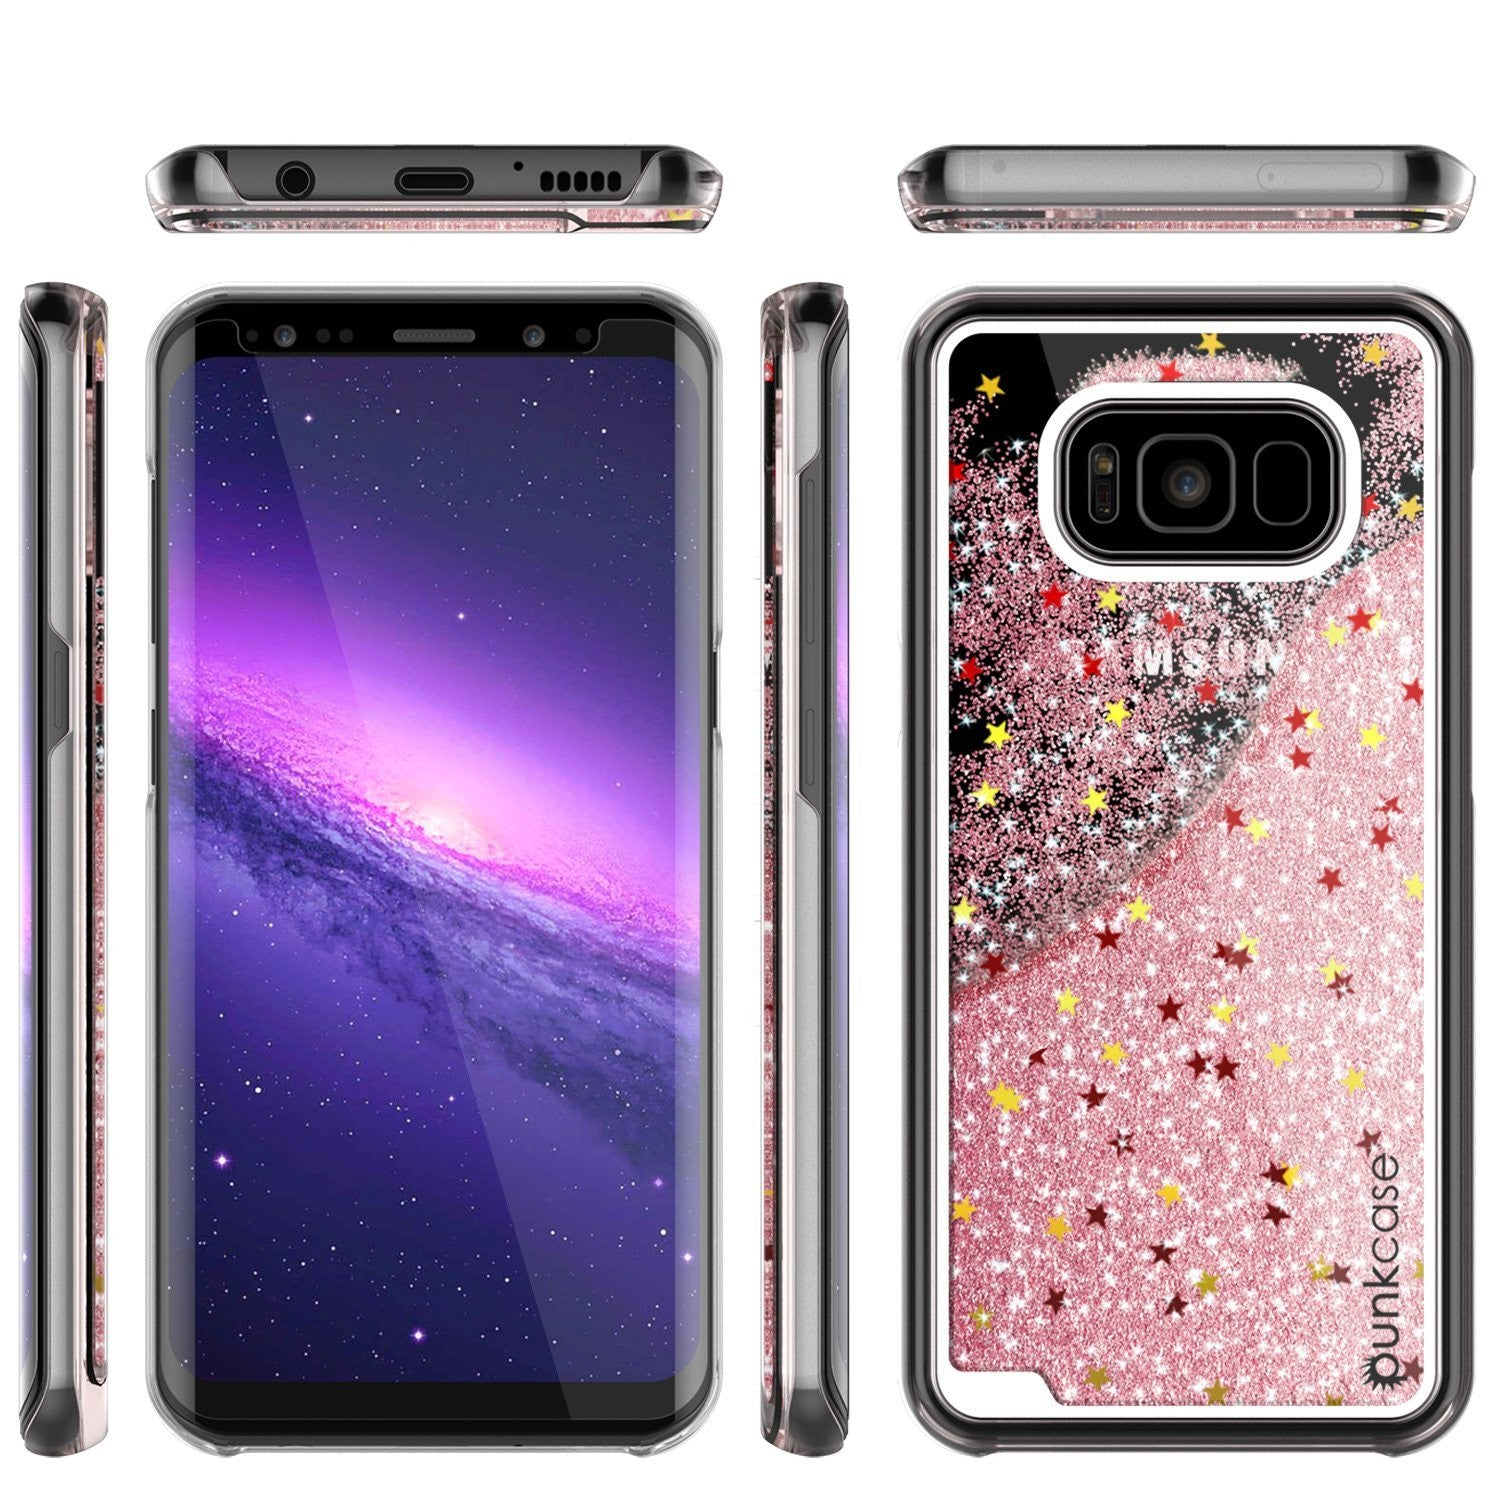 Galaxy S8 Case, Punkcase Liquid Rose Gold Series Protective Dual Layer Floating Glitter Cover